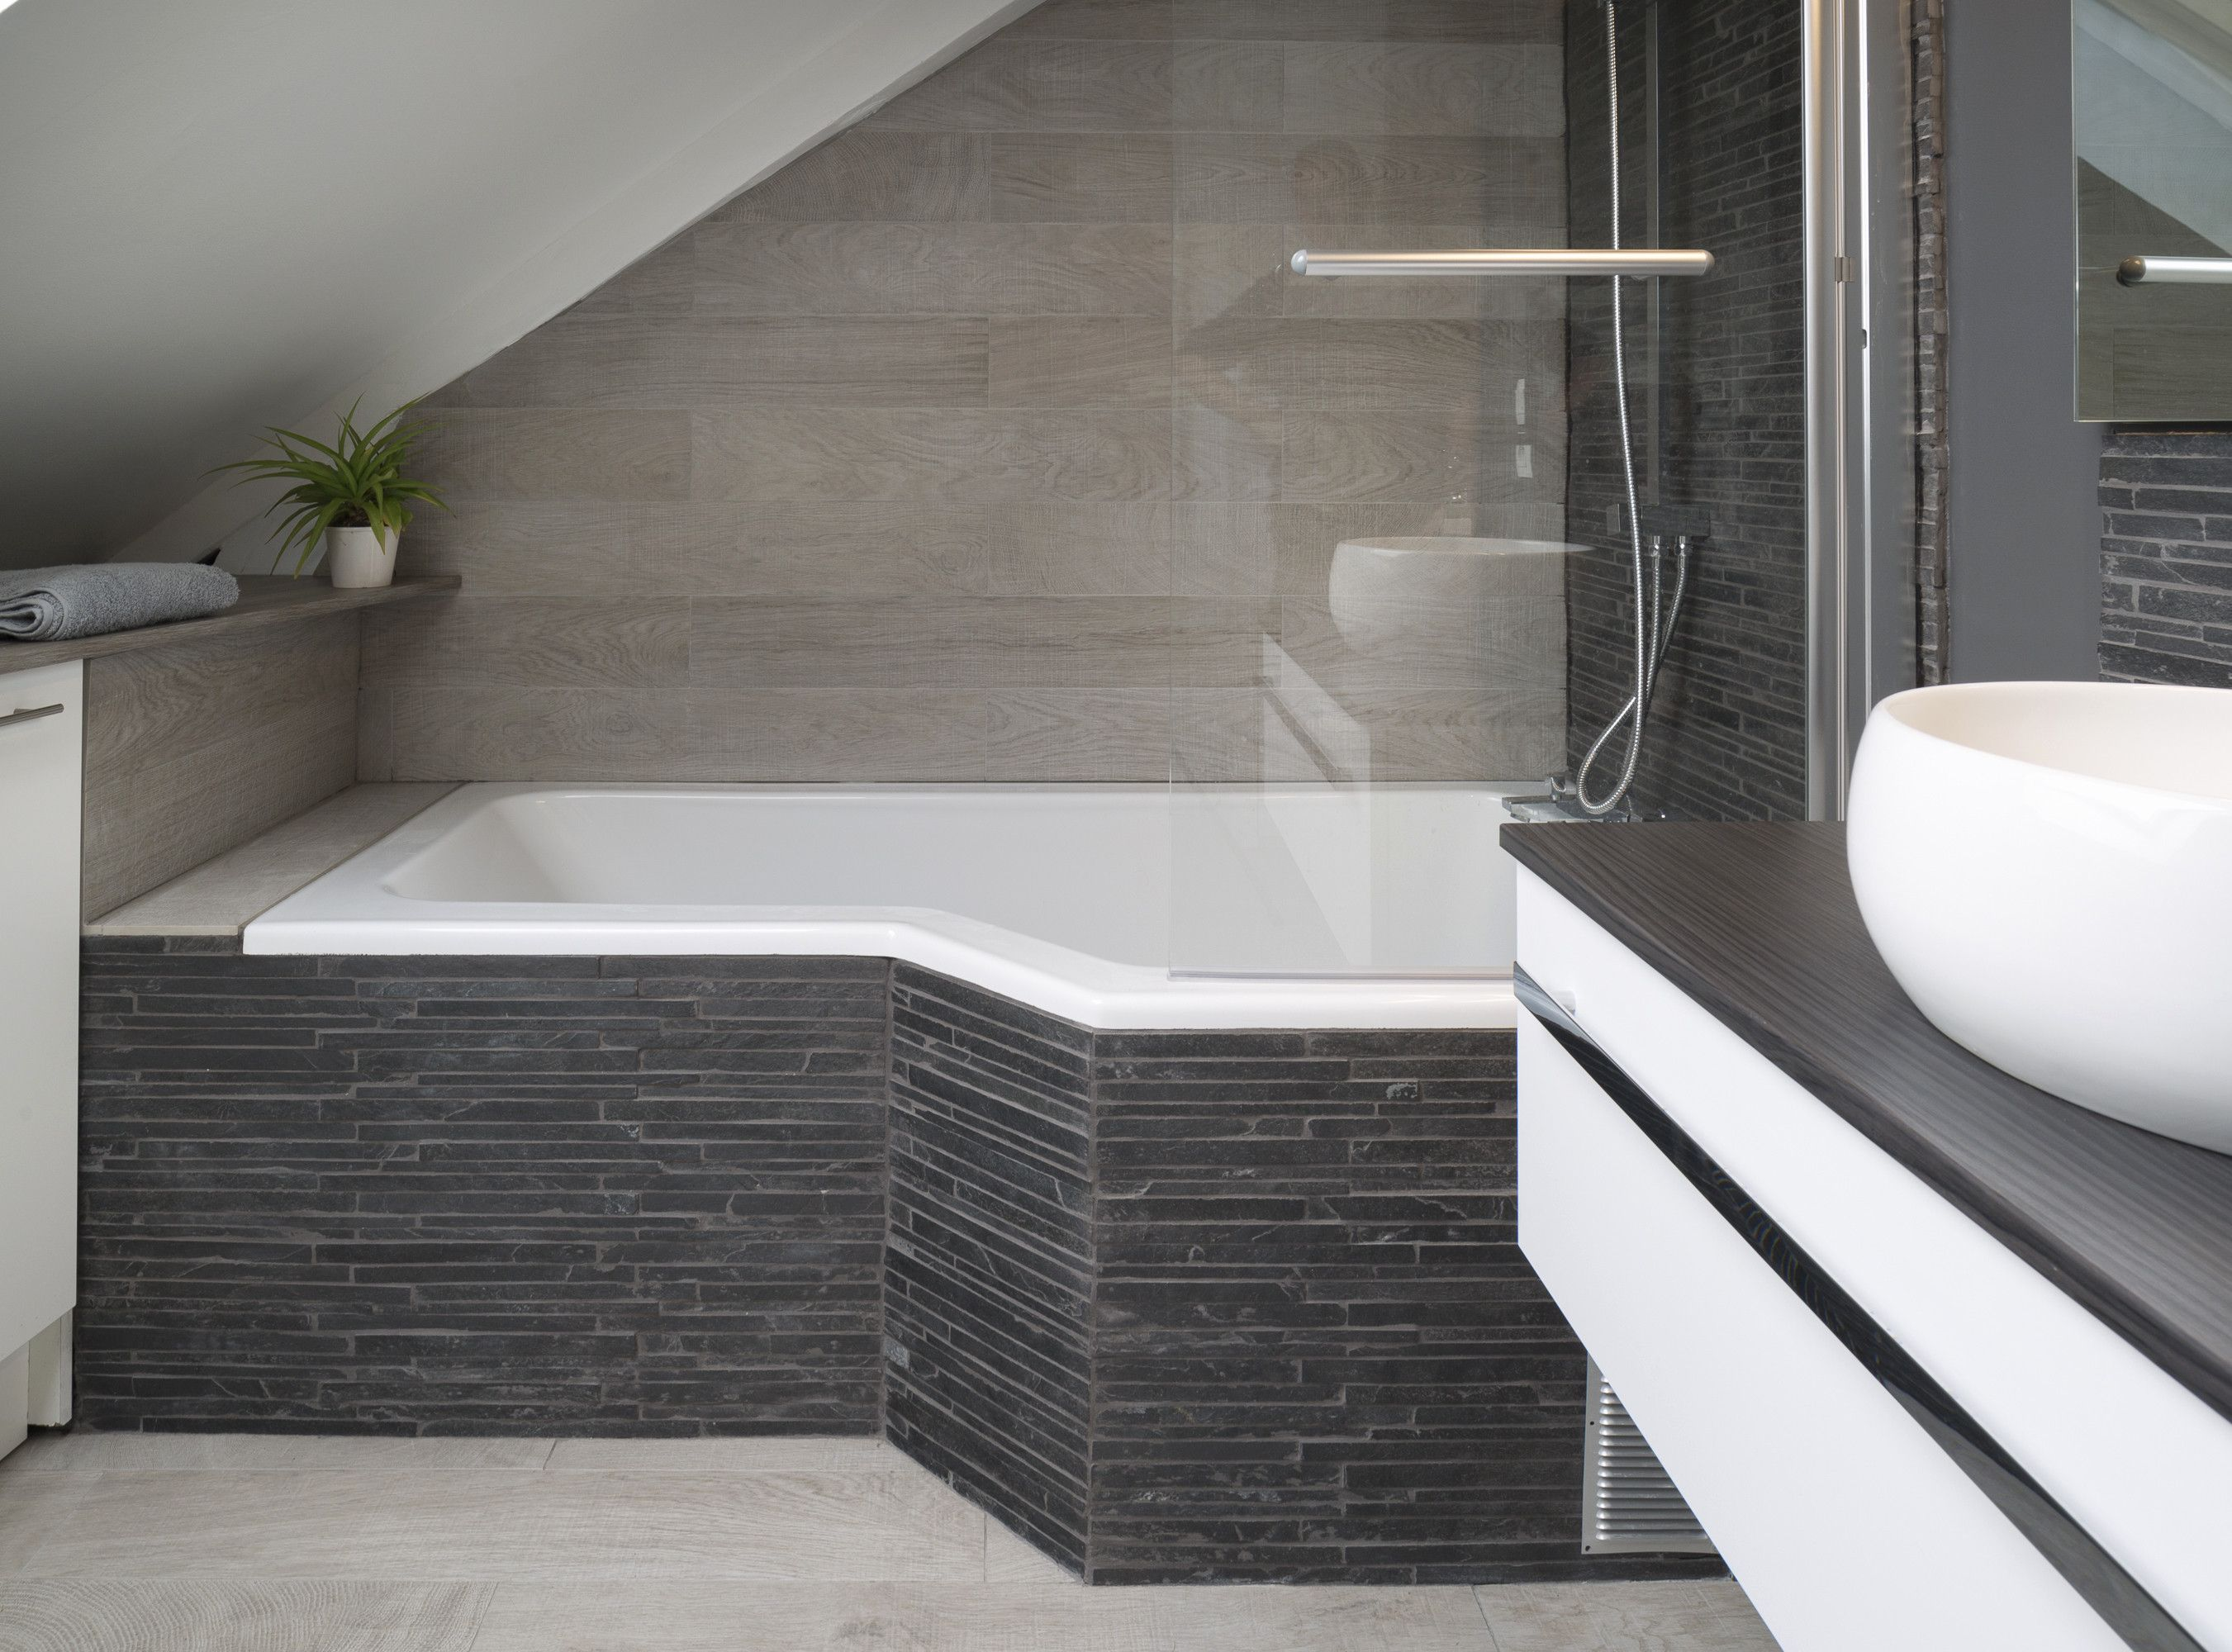 New Amenagement Salle De Bain 10m2 Idees De Maison En 2019